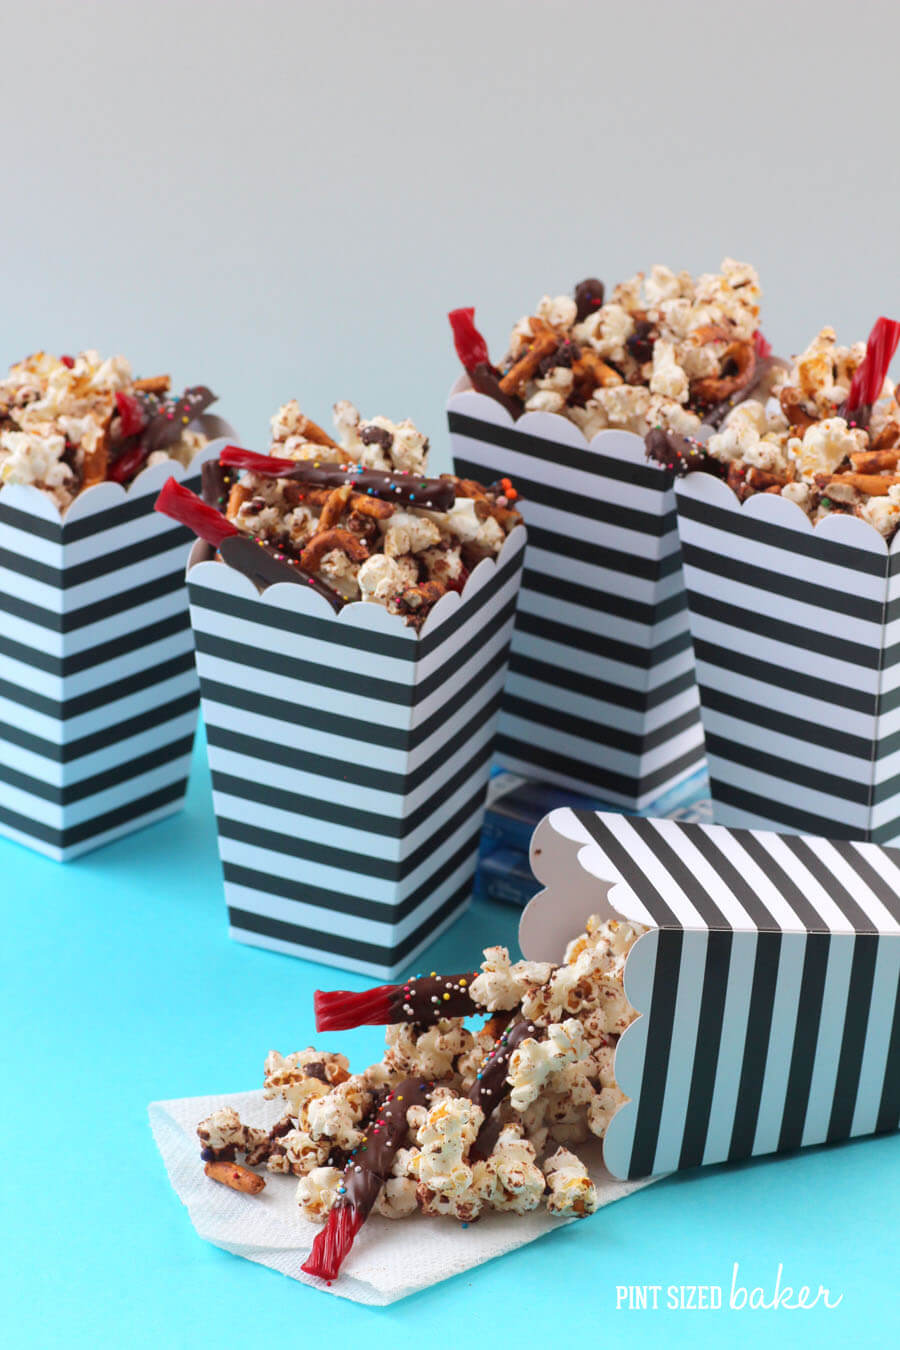 Grab the red whips and a movie - this popcorn has it ALL!